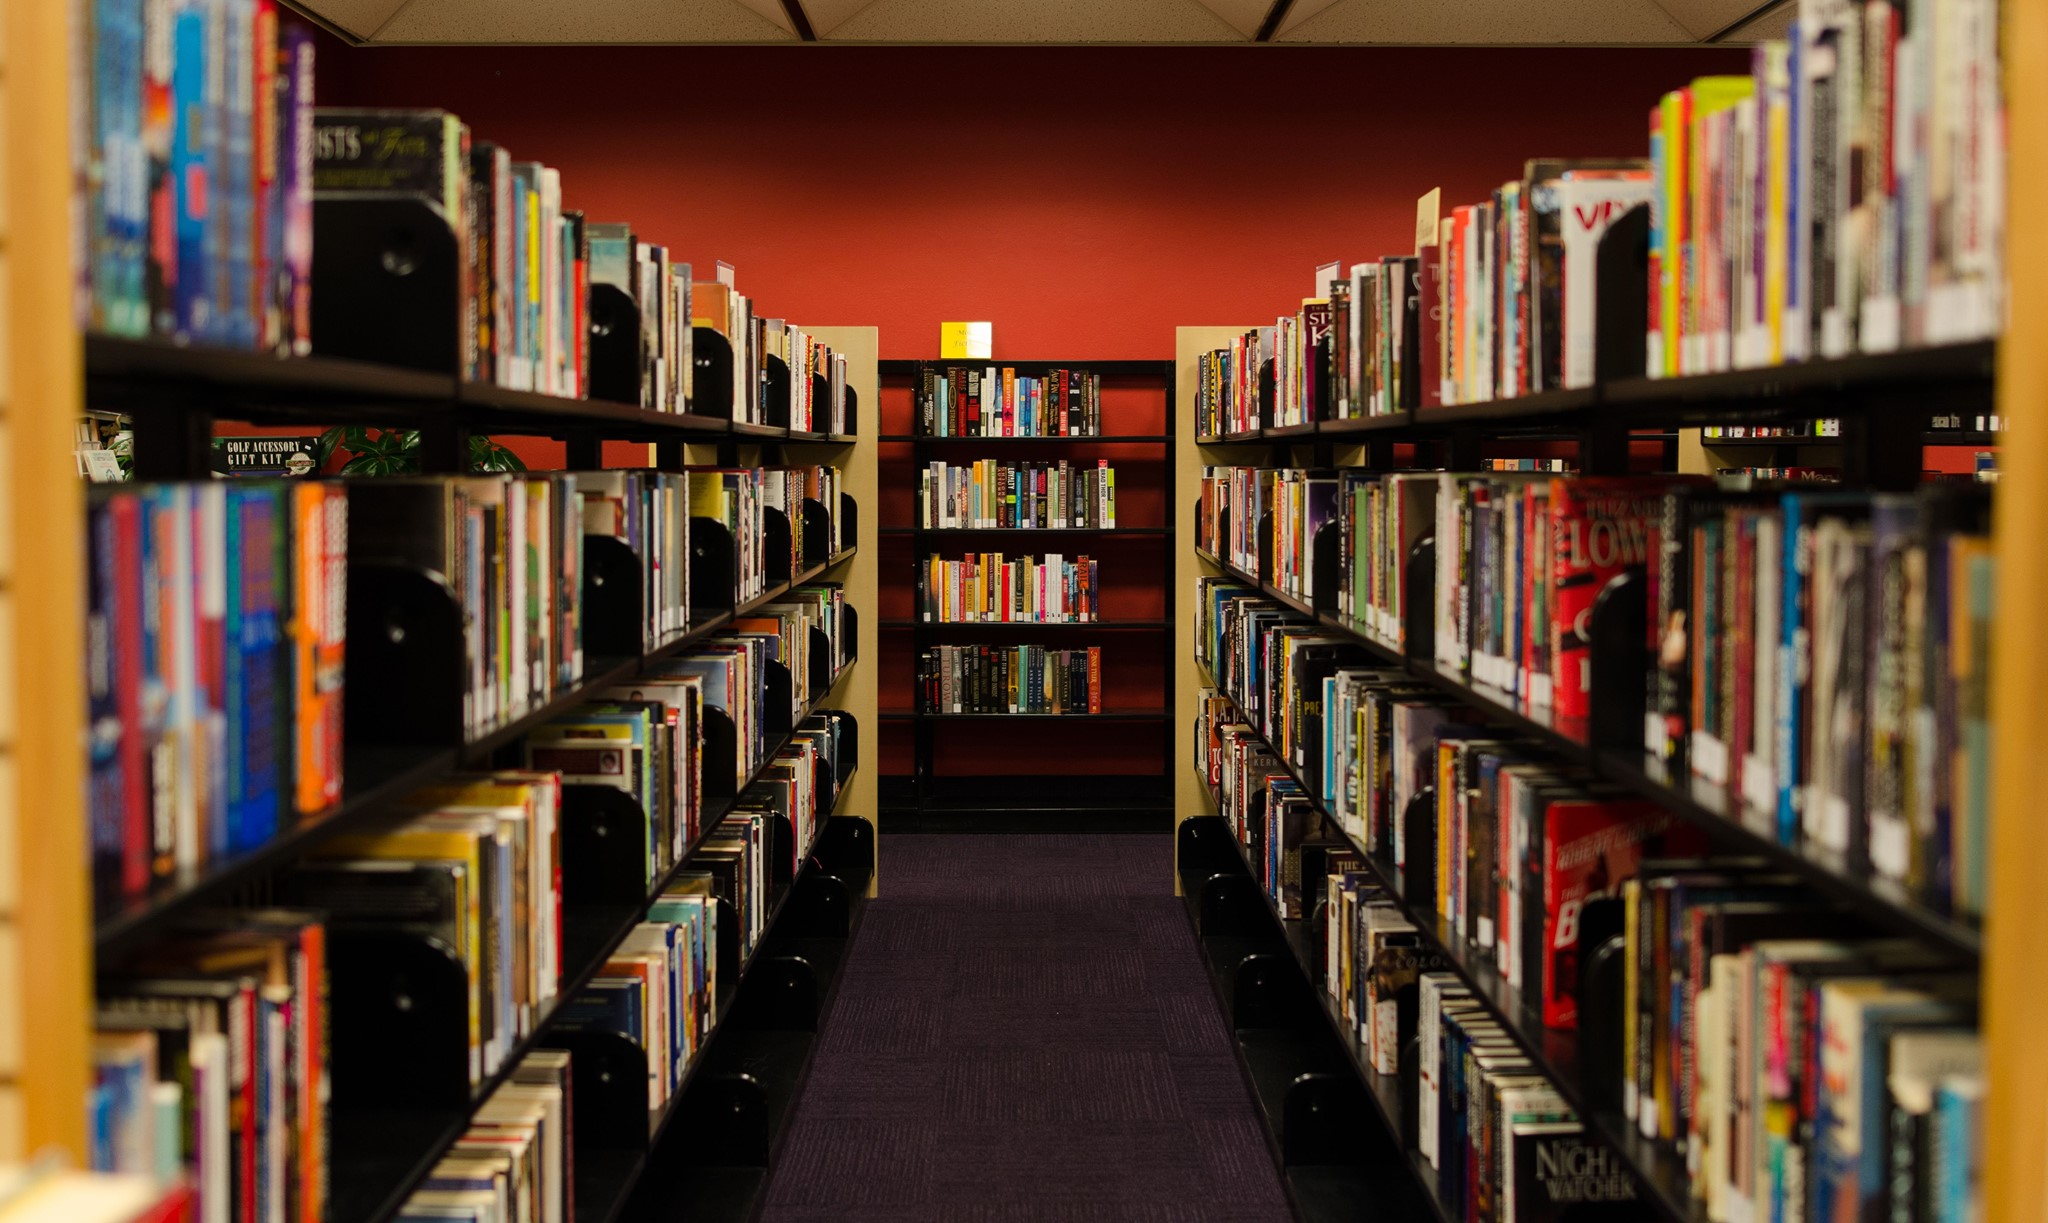 row of books on shelves in library